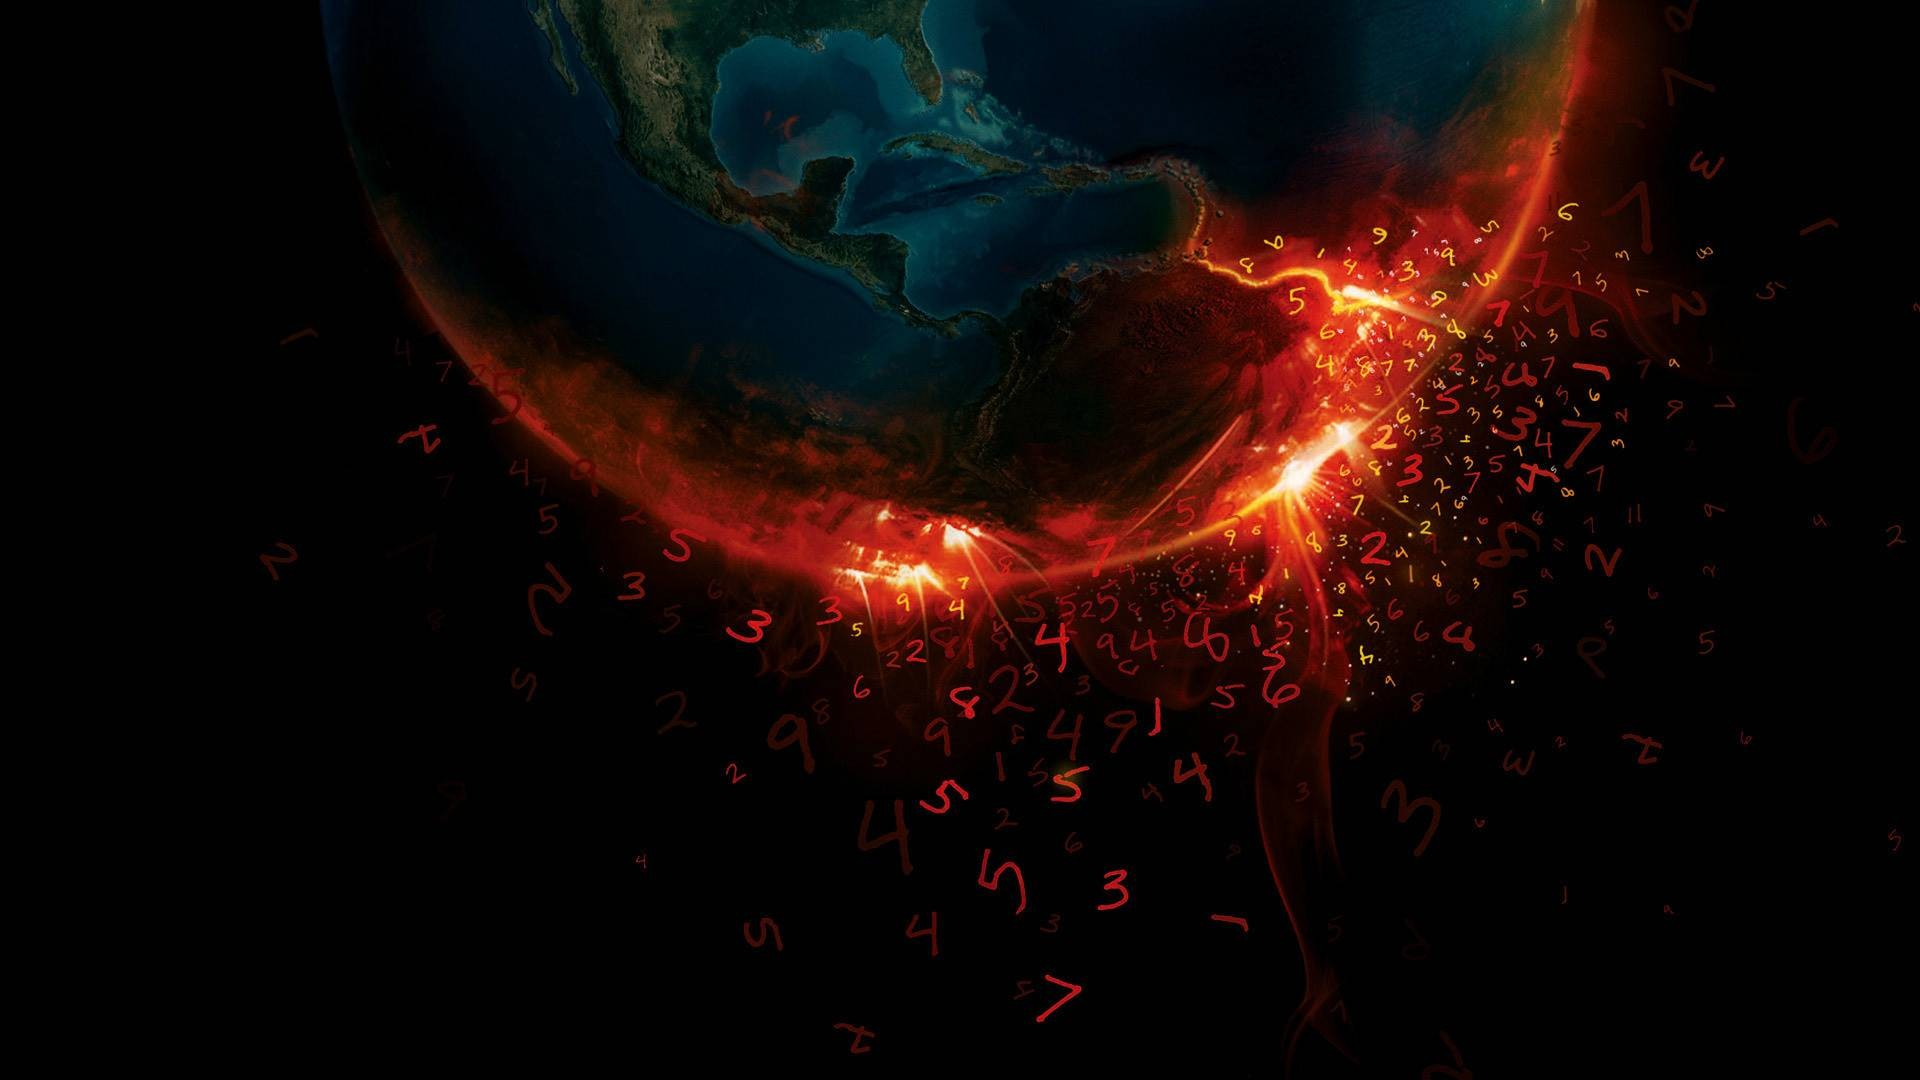 General 1920x1080 numbers Earth digital art space art space planet apocalyptic